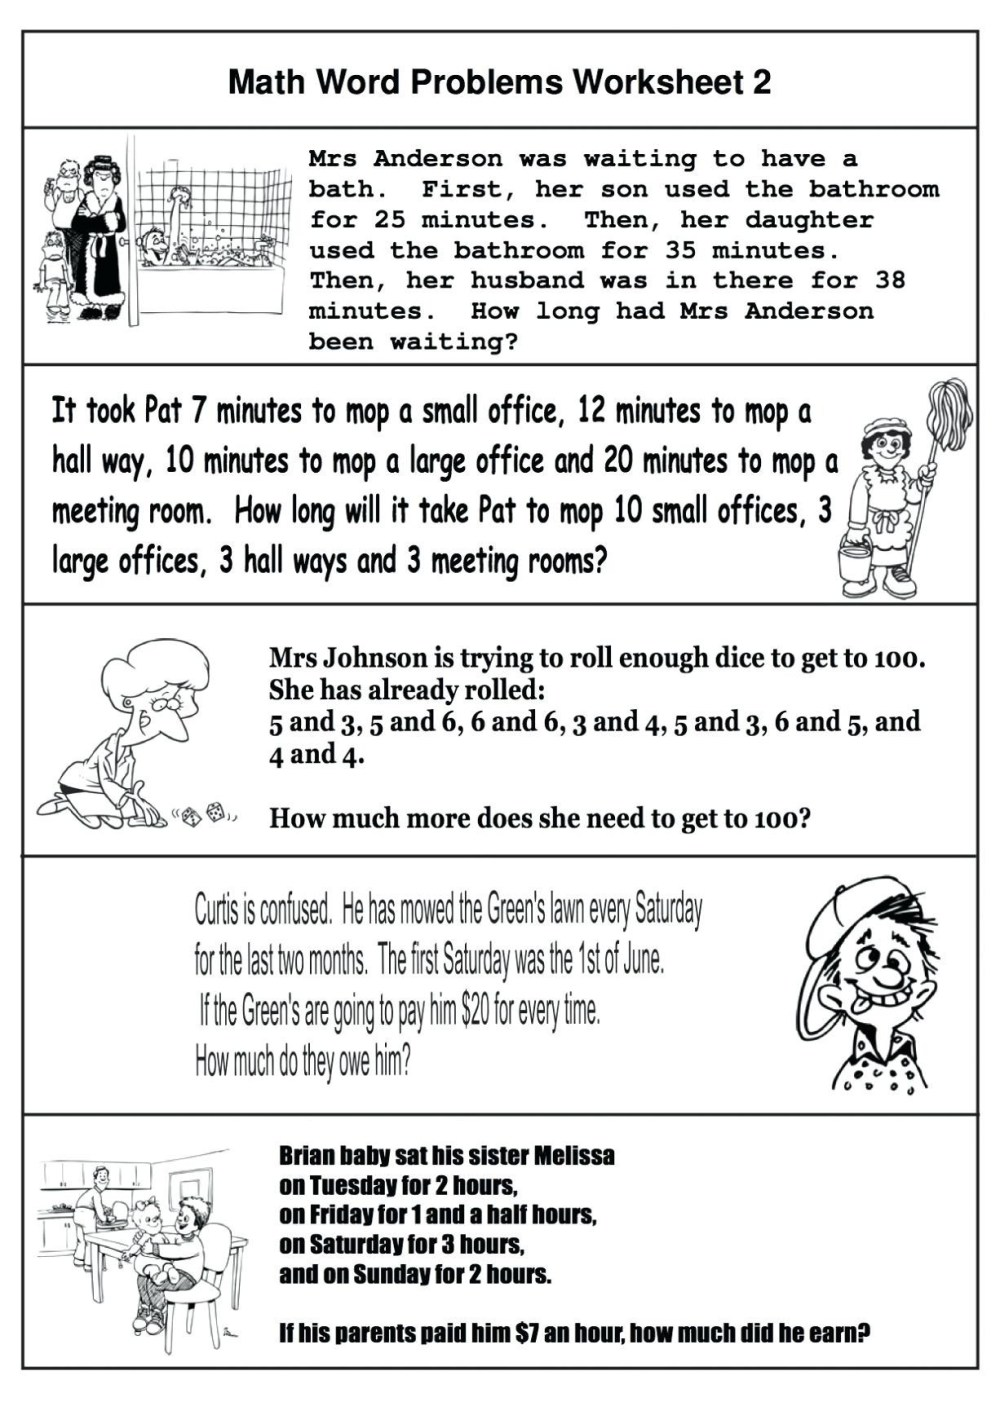 medium resolution of 5 Free Math Worksheets Fourth Grade 4 Addition Adding 3 Digit and 1 Digit  Numbers - AMP